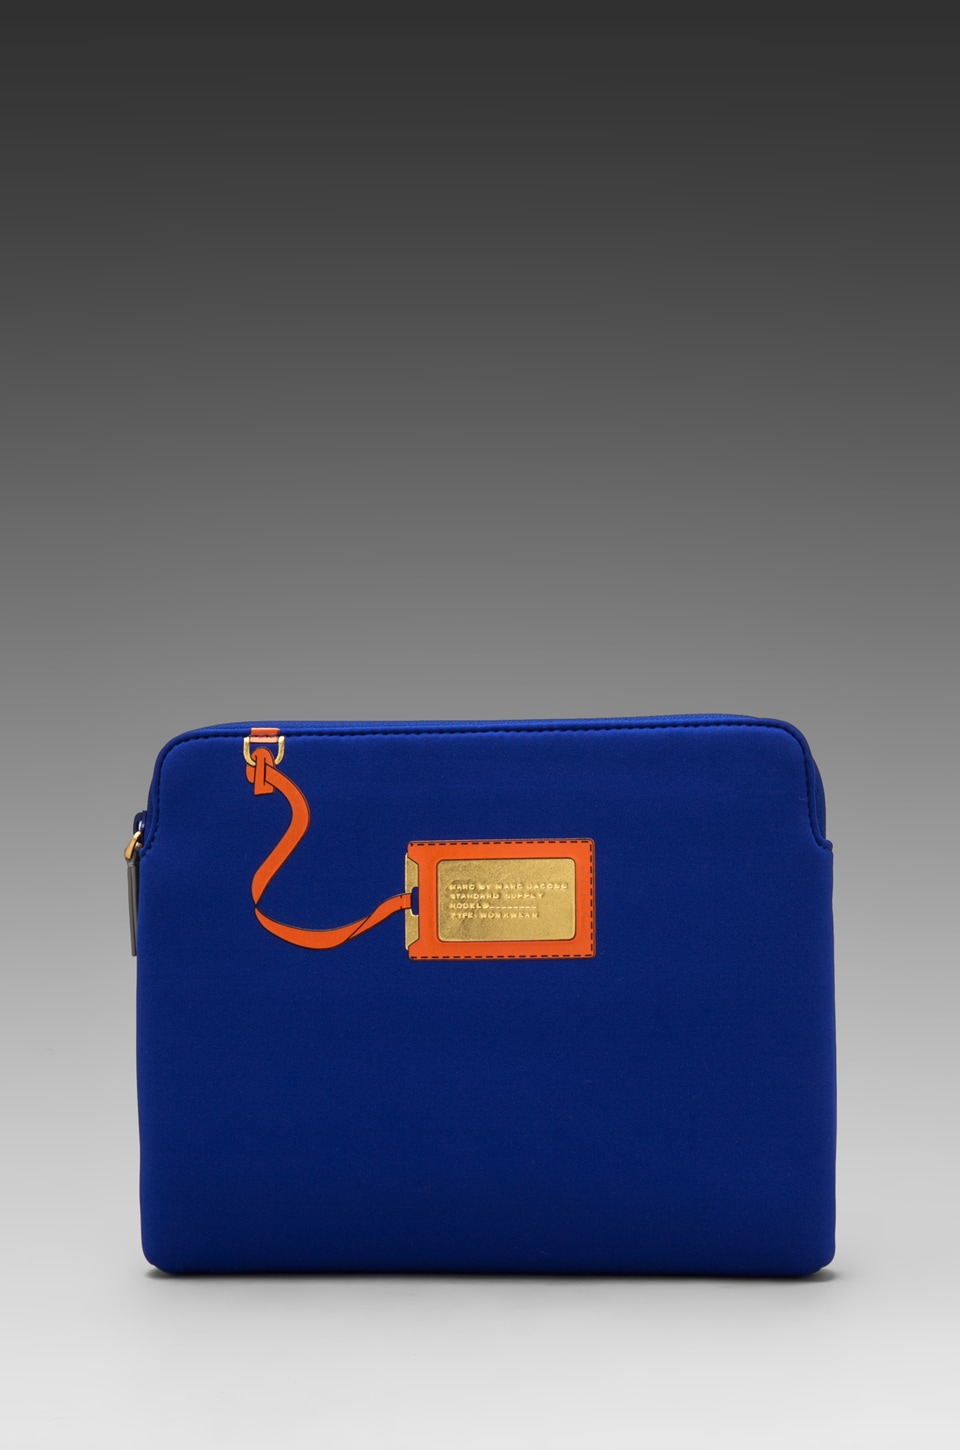 Marc by Marc Jacobs Heathrow Trompe L'oile Neoprene Tablet Case in Bauhaus Blue Multi